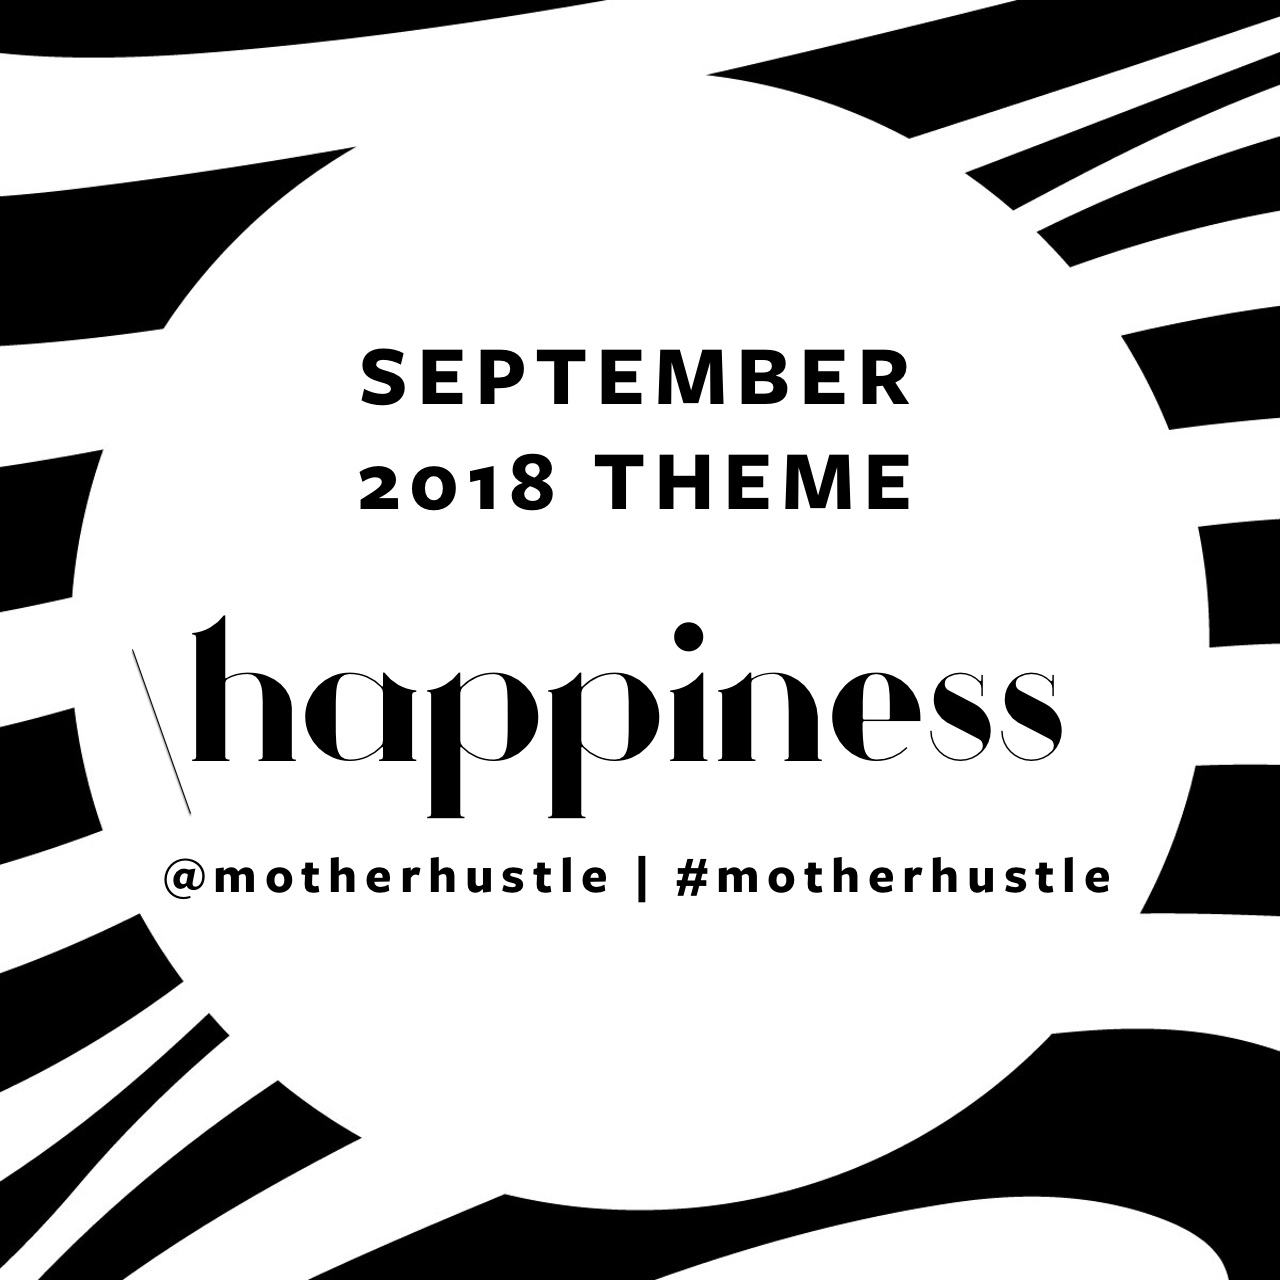 MotherHustle Theme September 2018 - Happiness